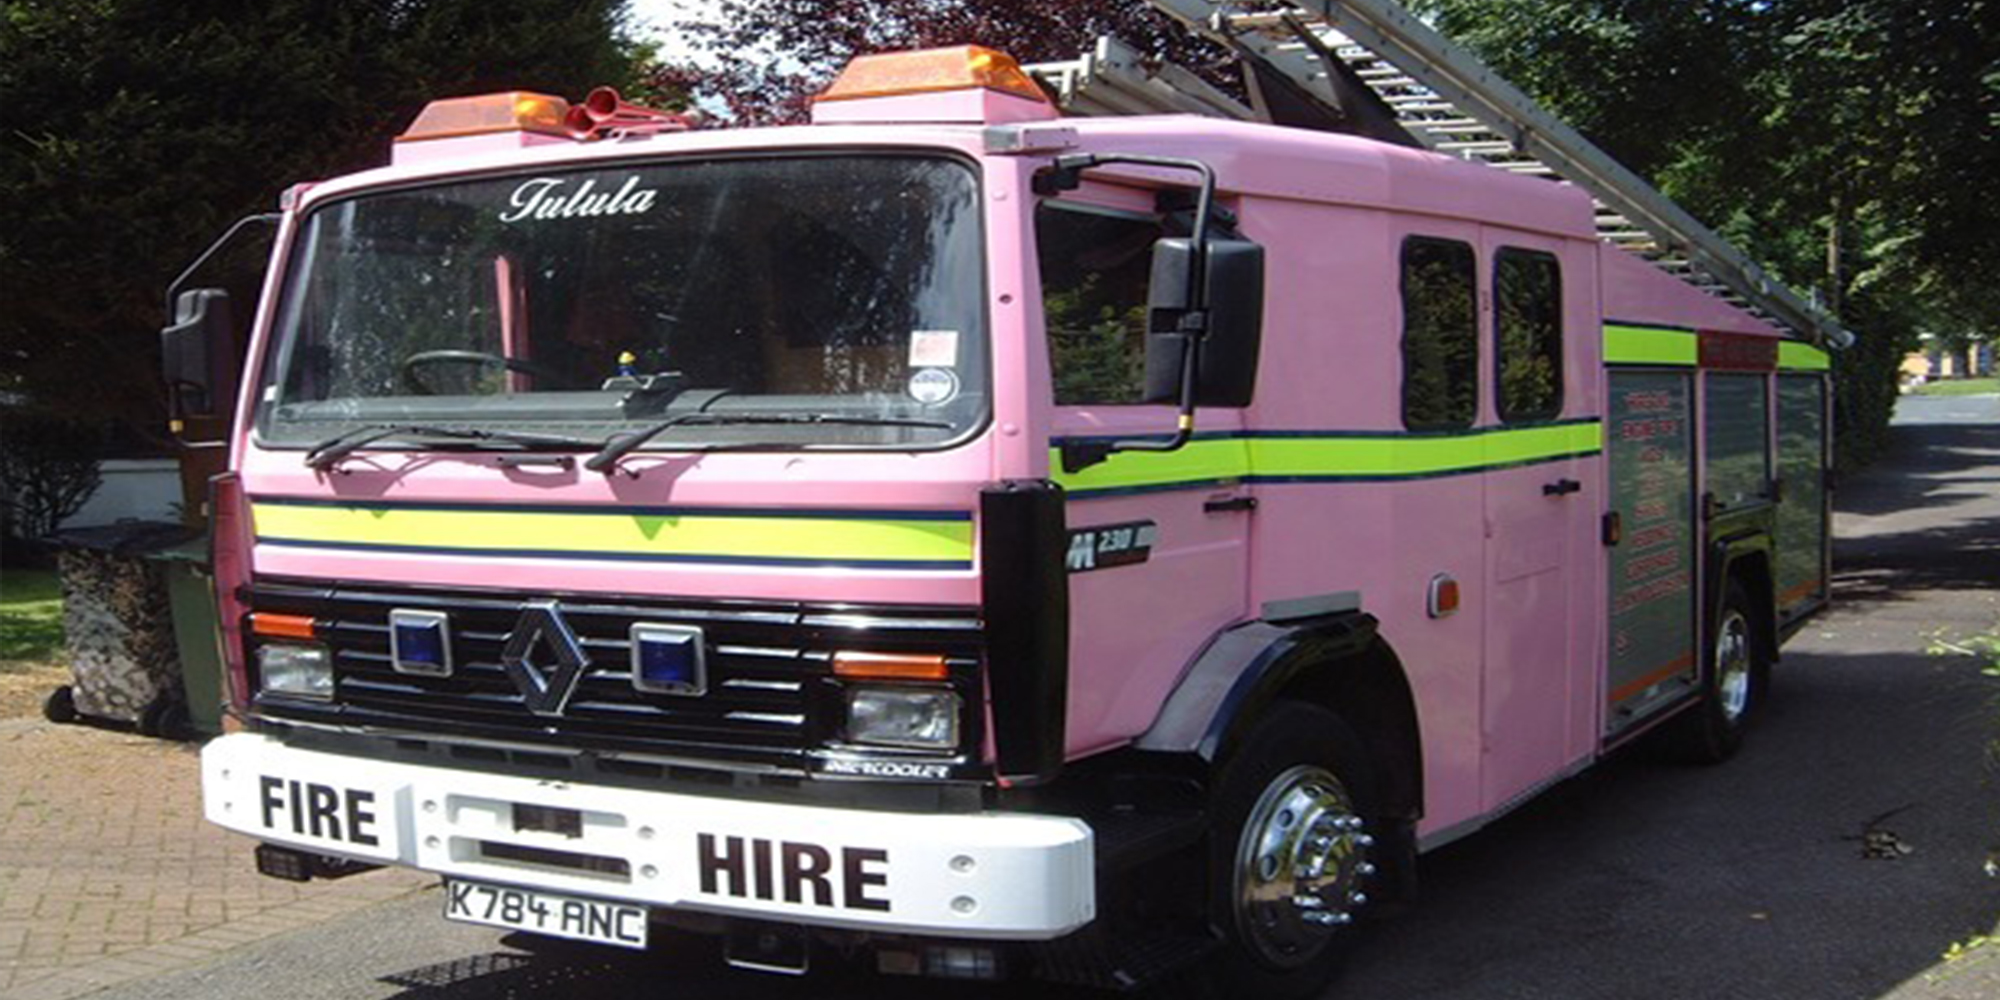 Fire4hire